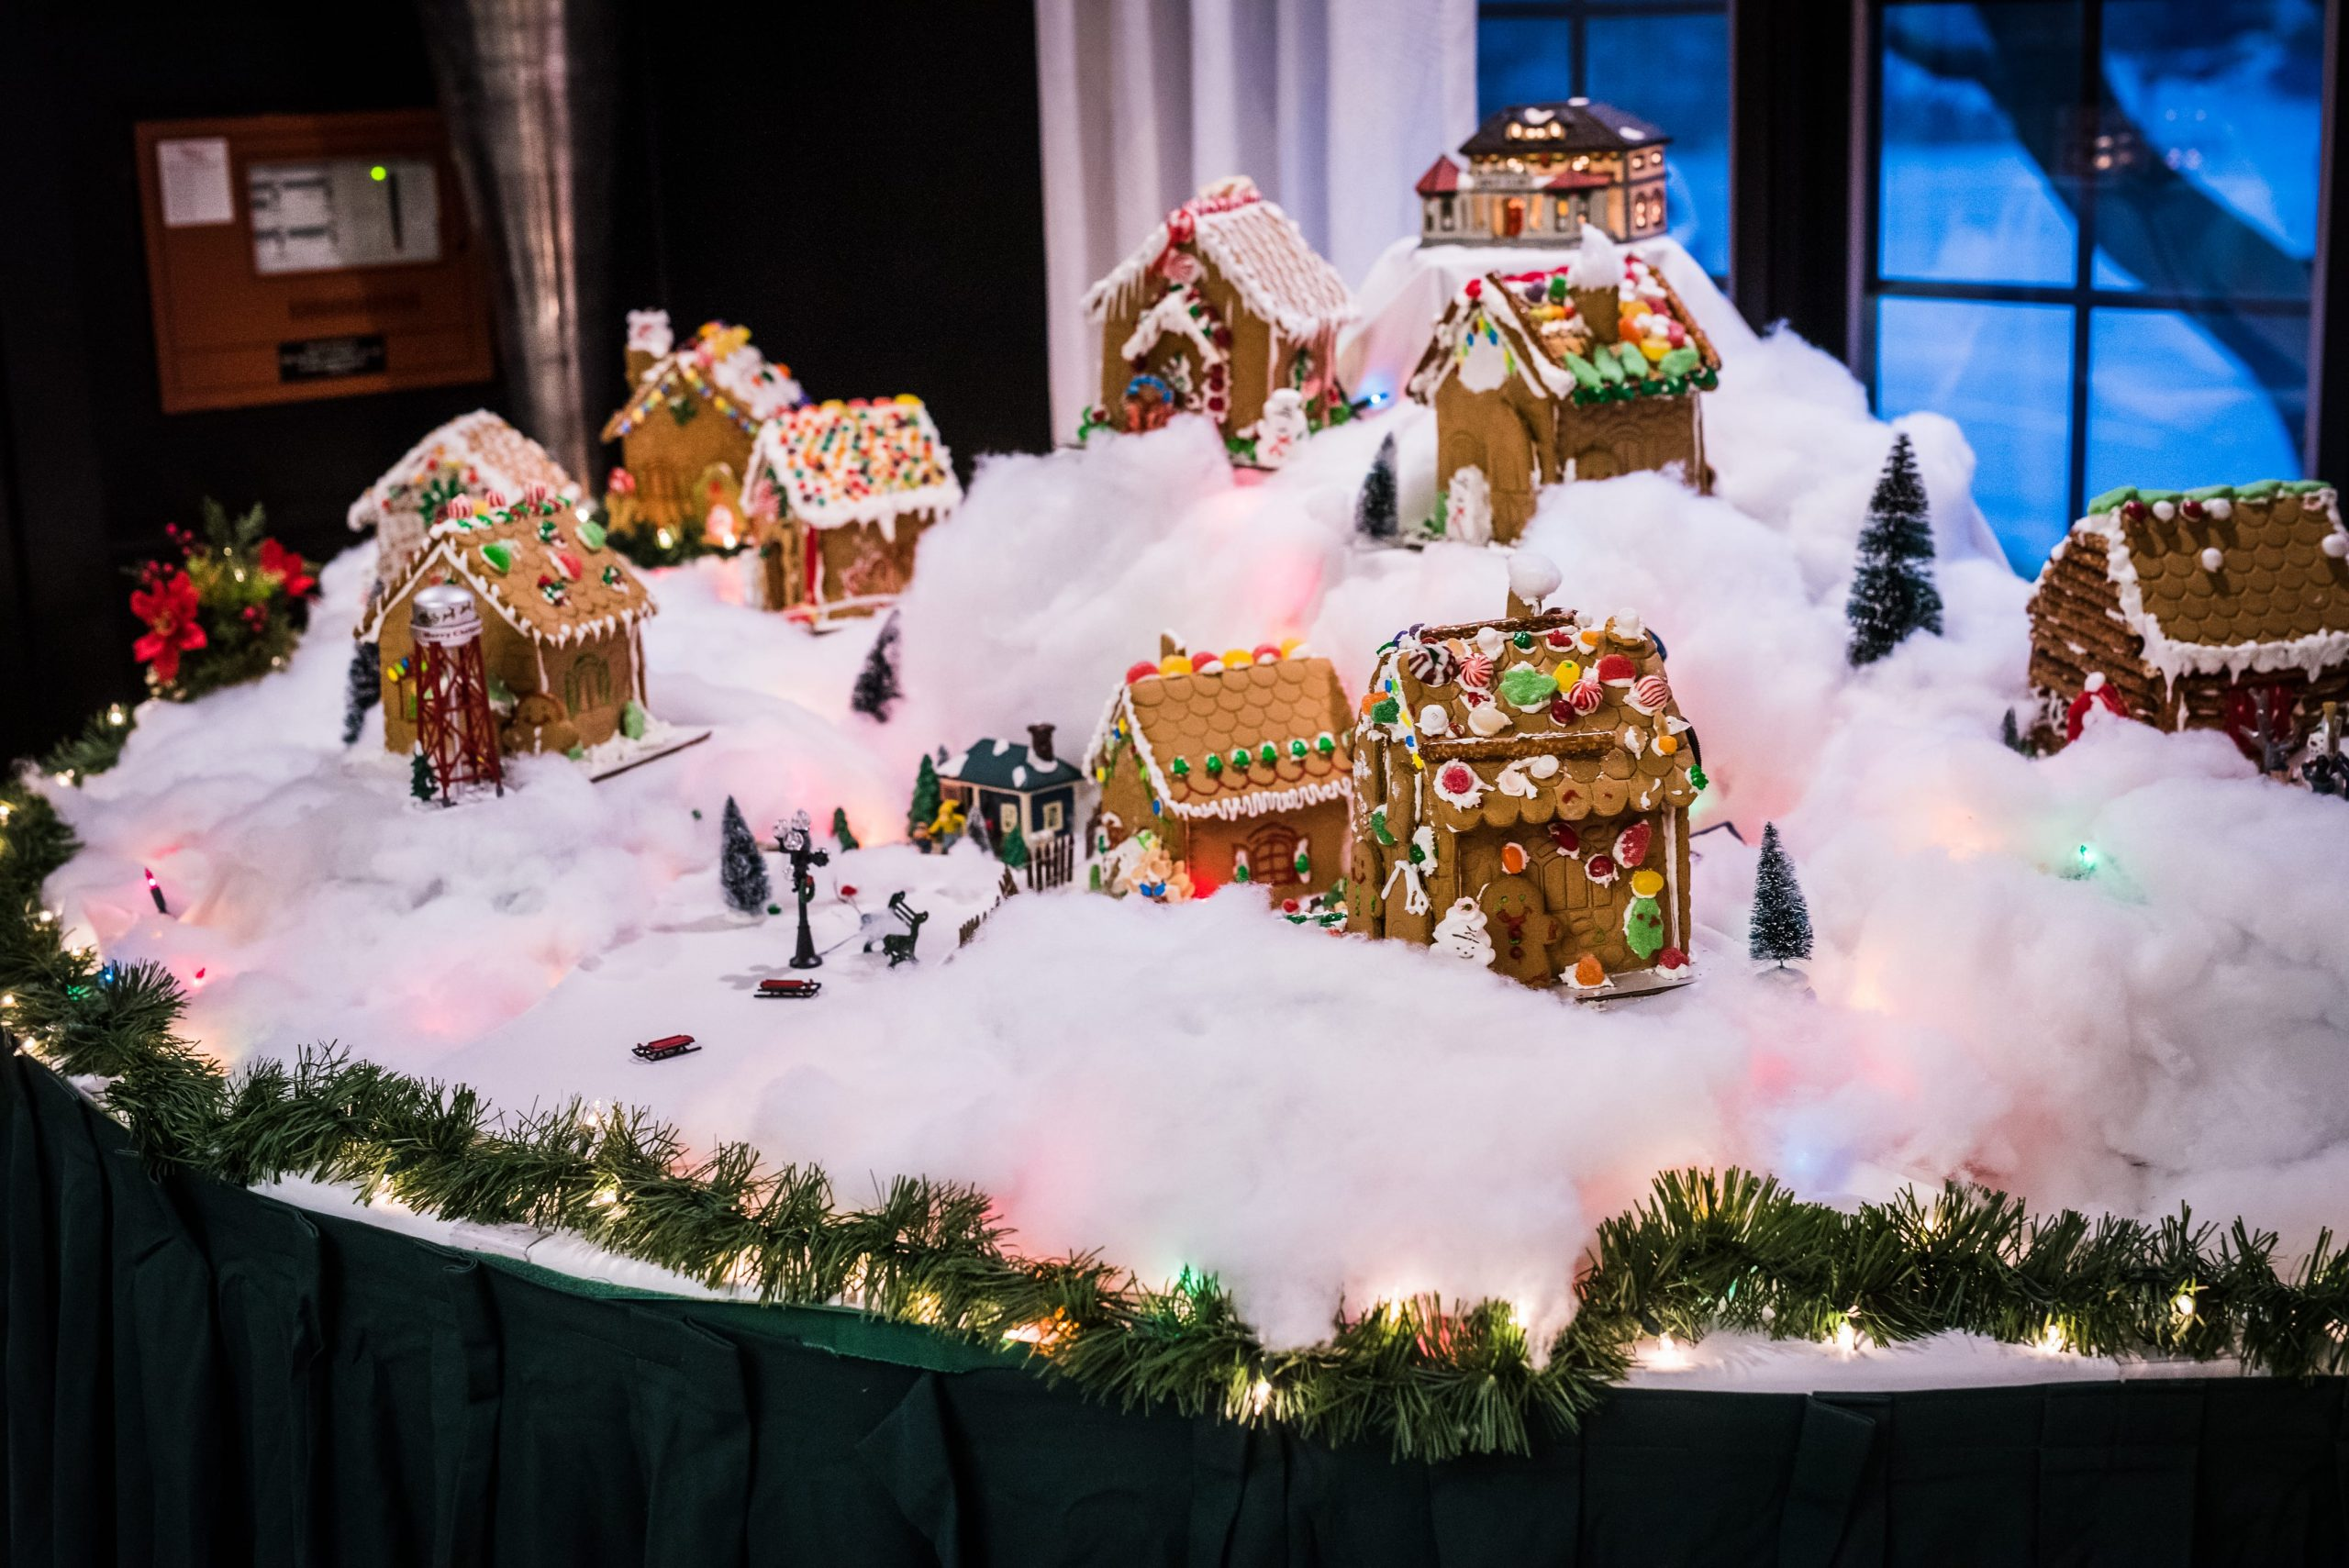 gingerbread houses wedding reception decorations